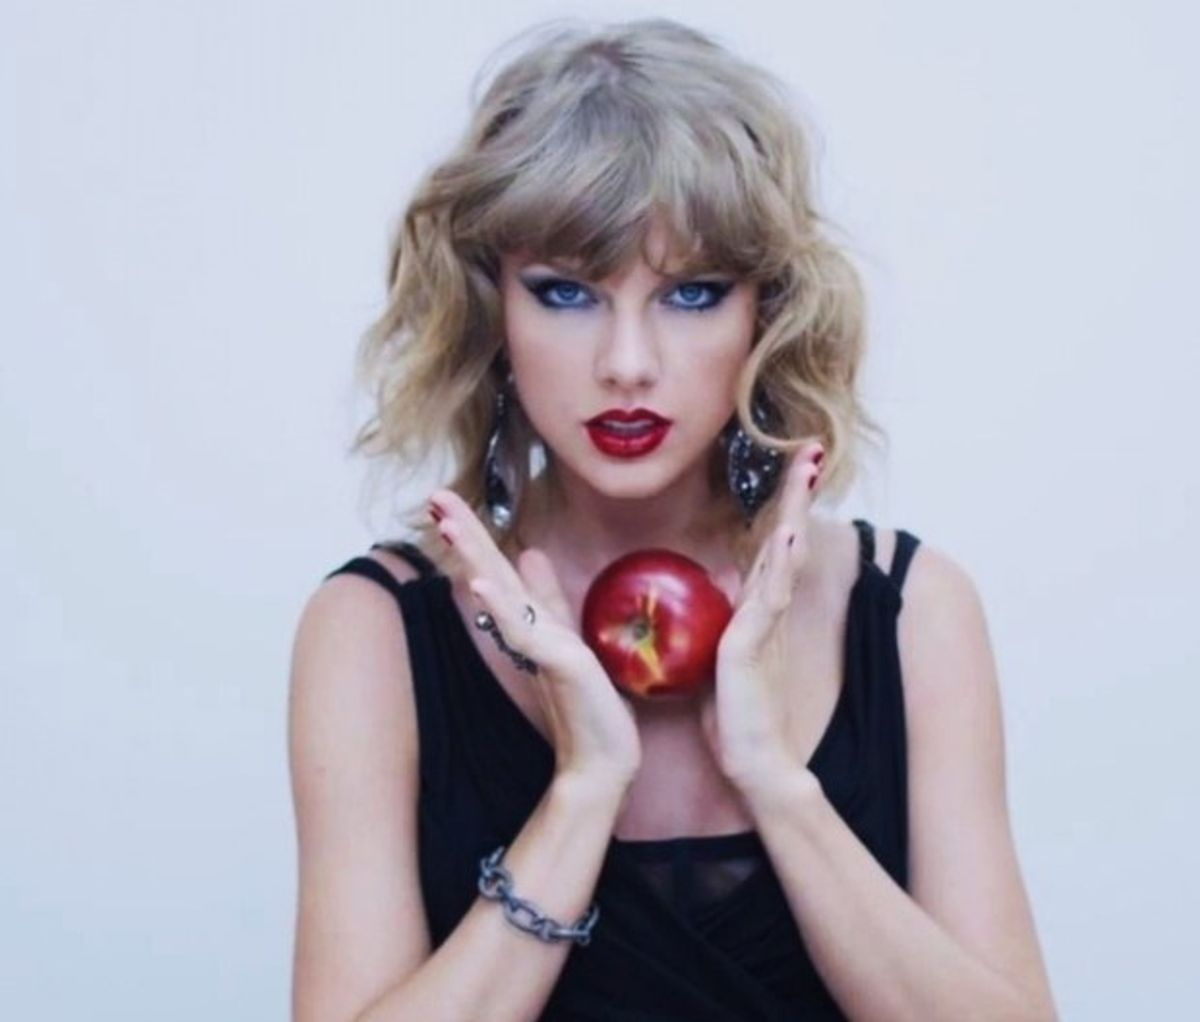 20 Taylor Swift Songs That, Surprise, Aren't About Boys